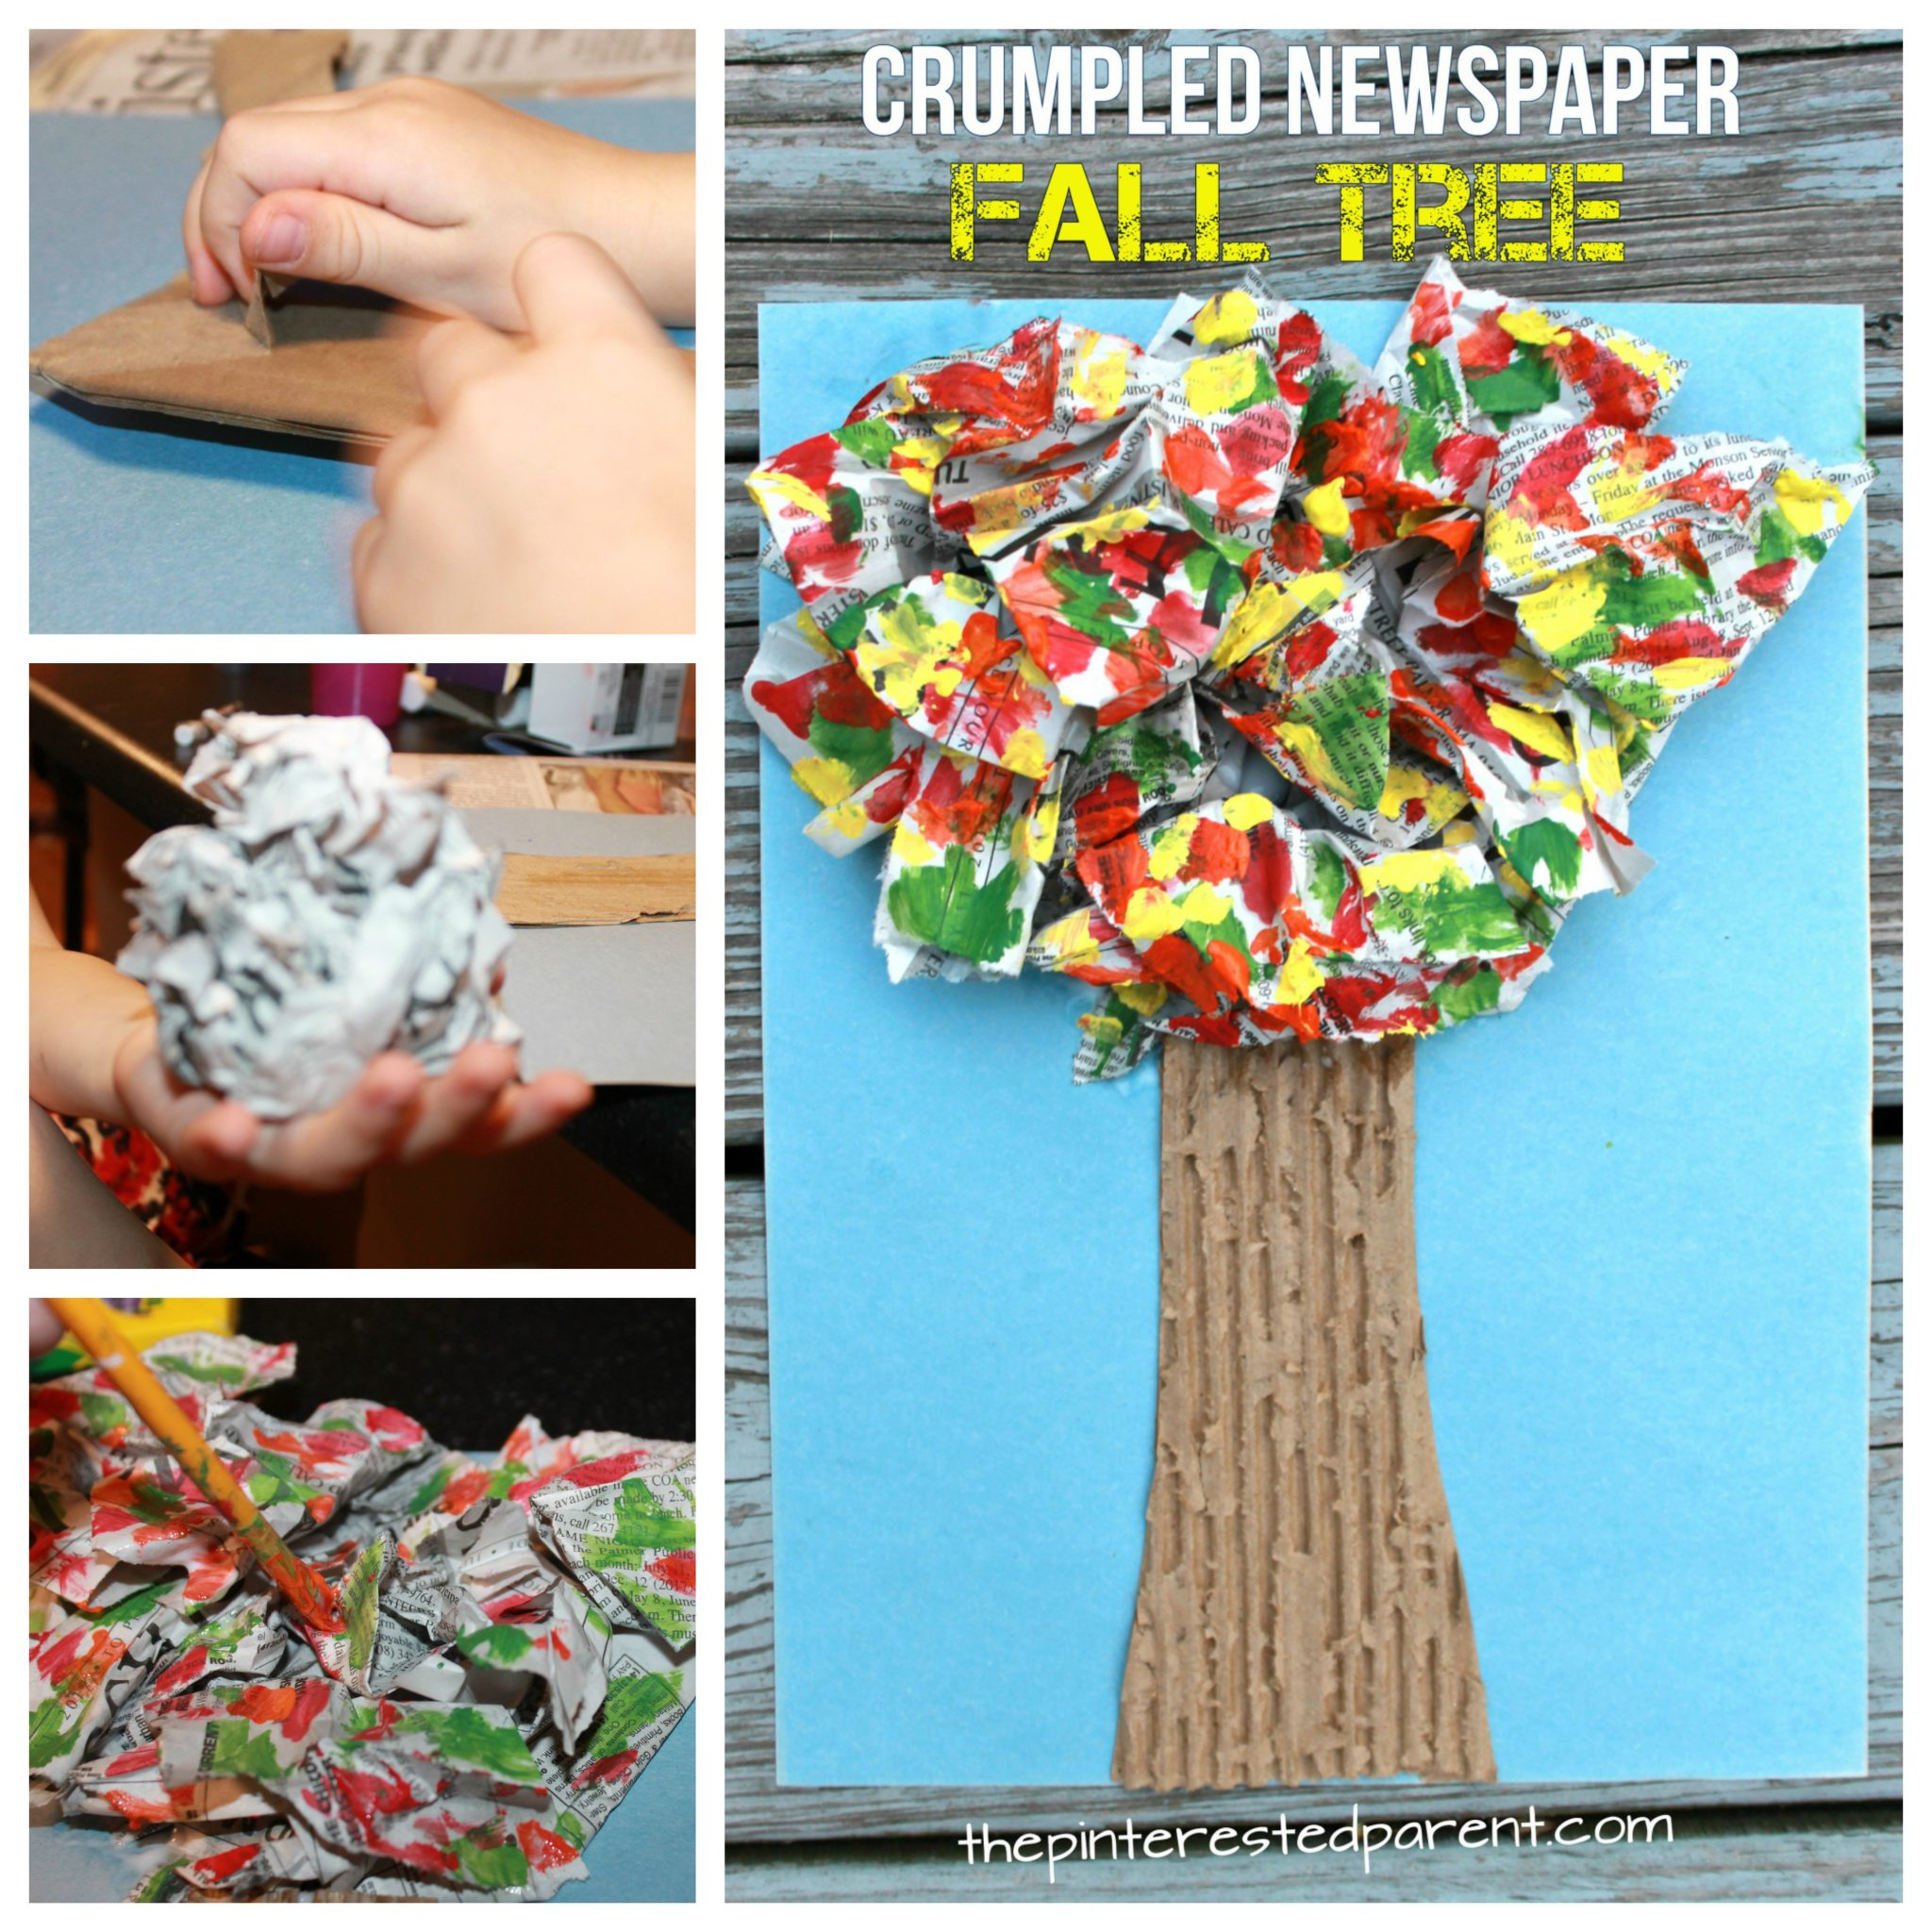 Crumpled Newspaper Fall Tree Craft For Kids Autumn Arts And Crafts Mixed Media